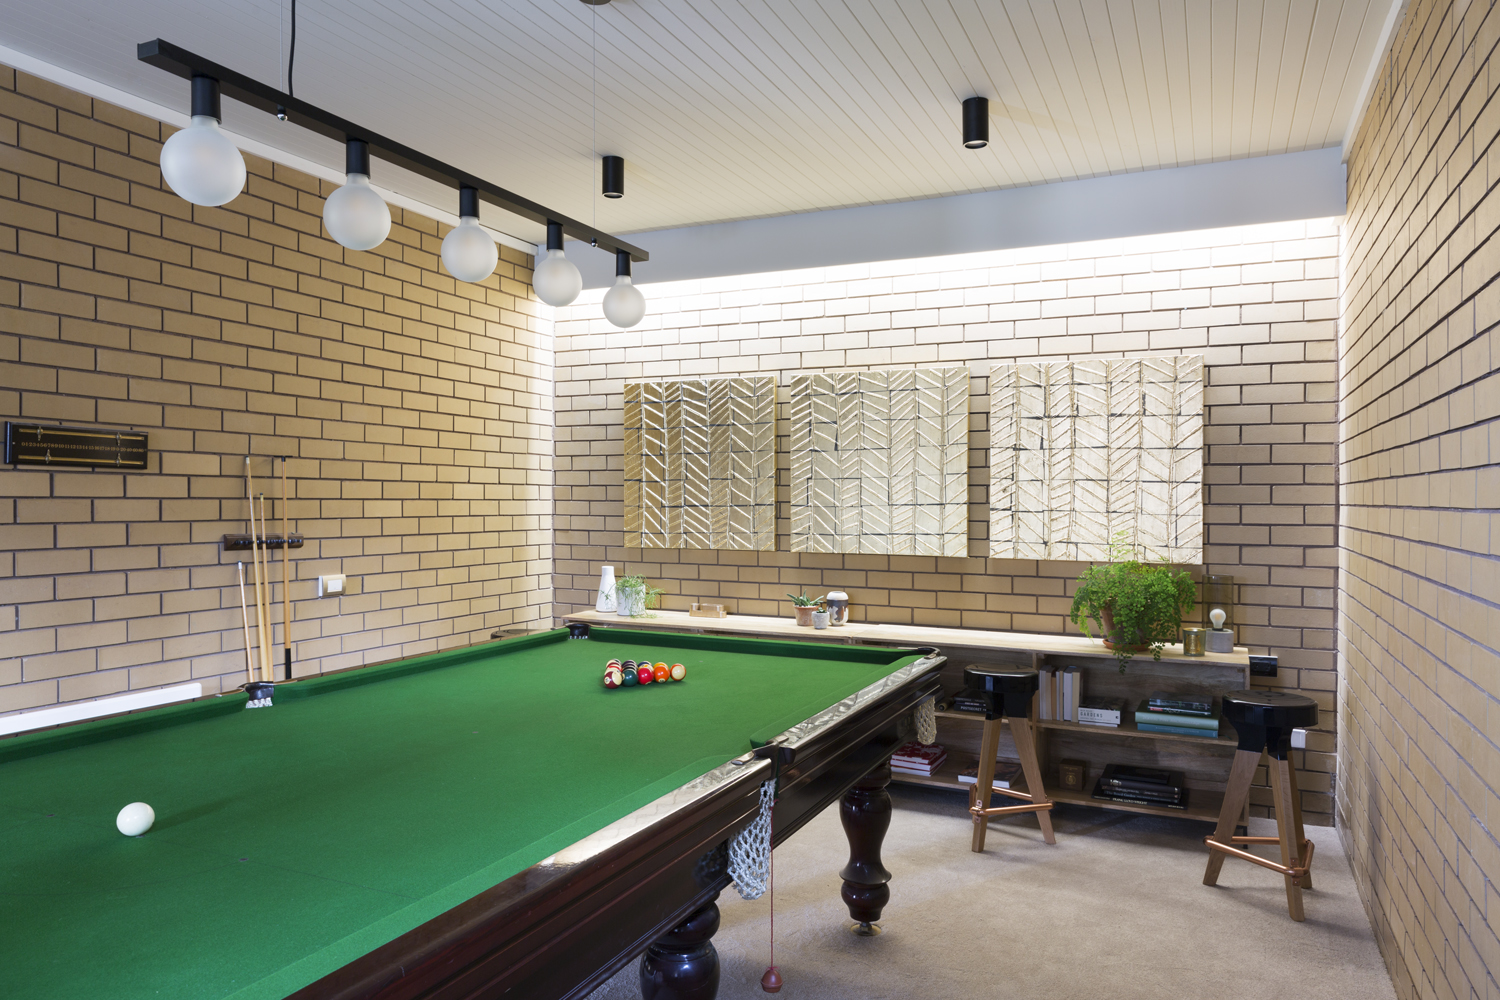 Retro rumpus room design by Interior designer Meredith Lee, Mt Waverely home Melbourne